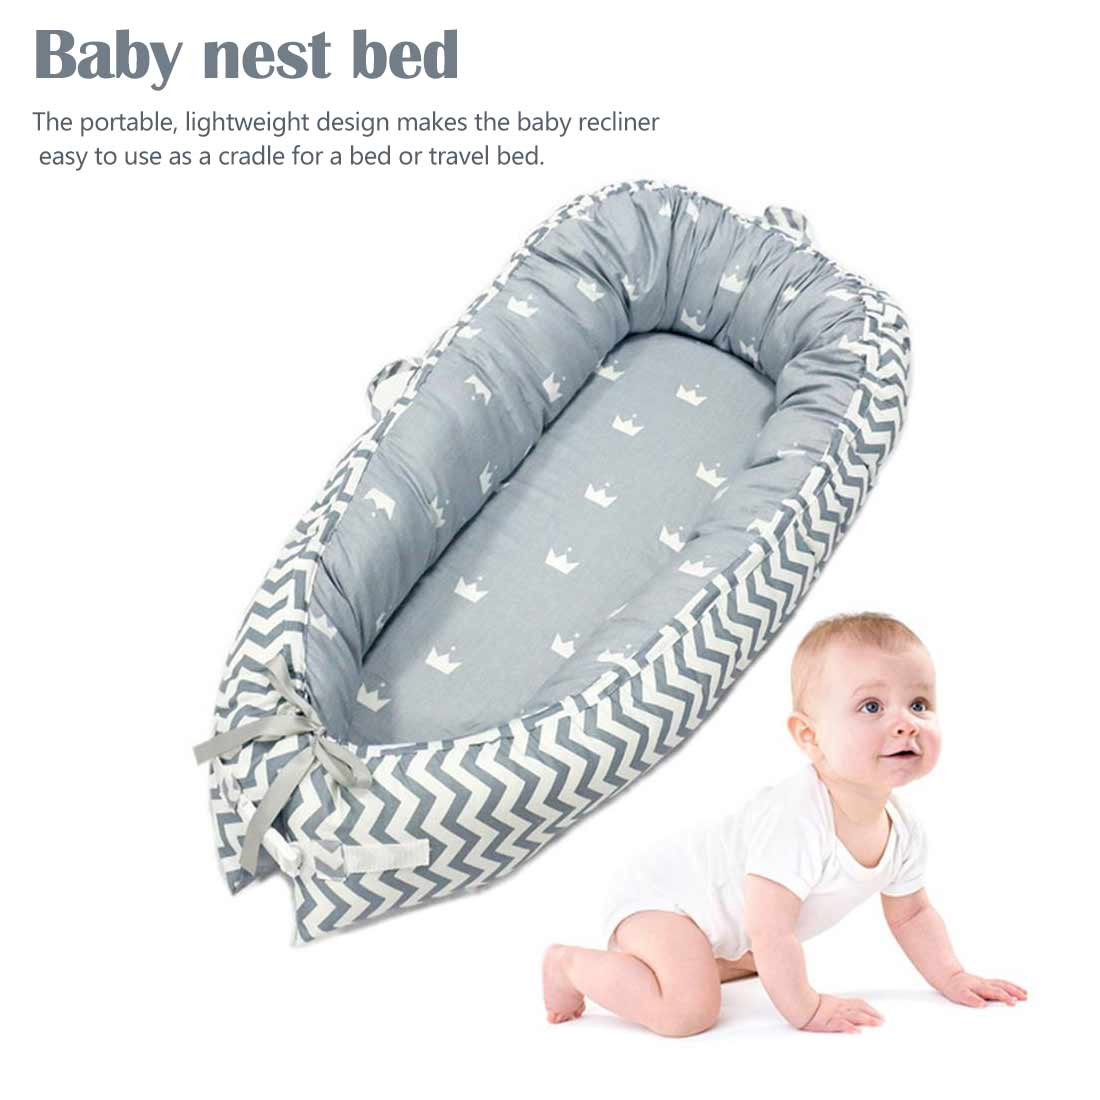 80*50cm Baby Nest Bed Portable Crib Travel Bed Infant Toddler Cotton Cradle For Newborn Baby Bassinet Bumper